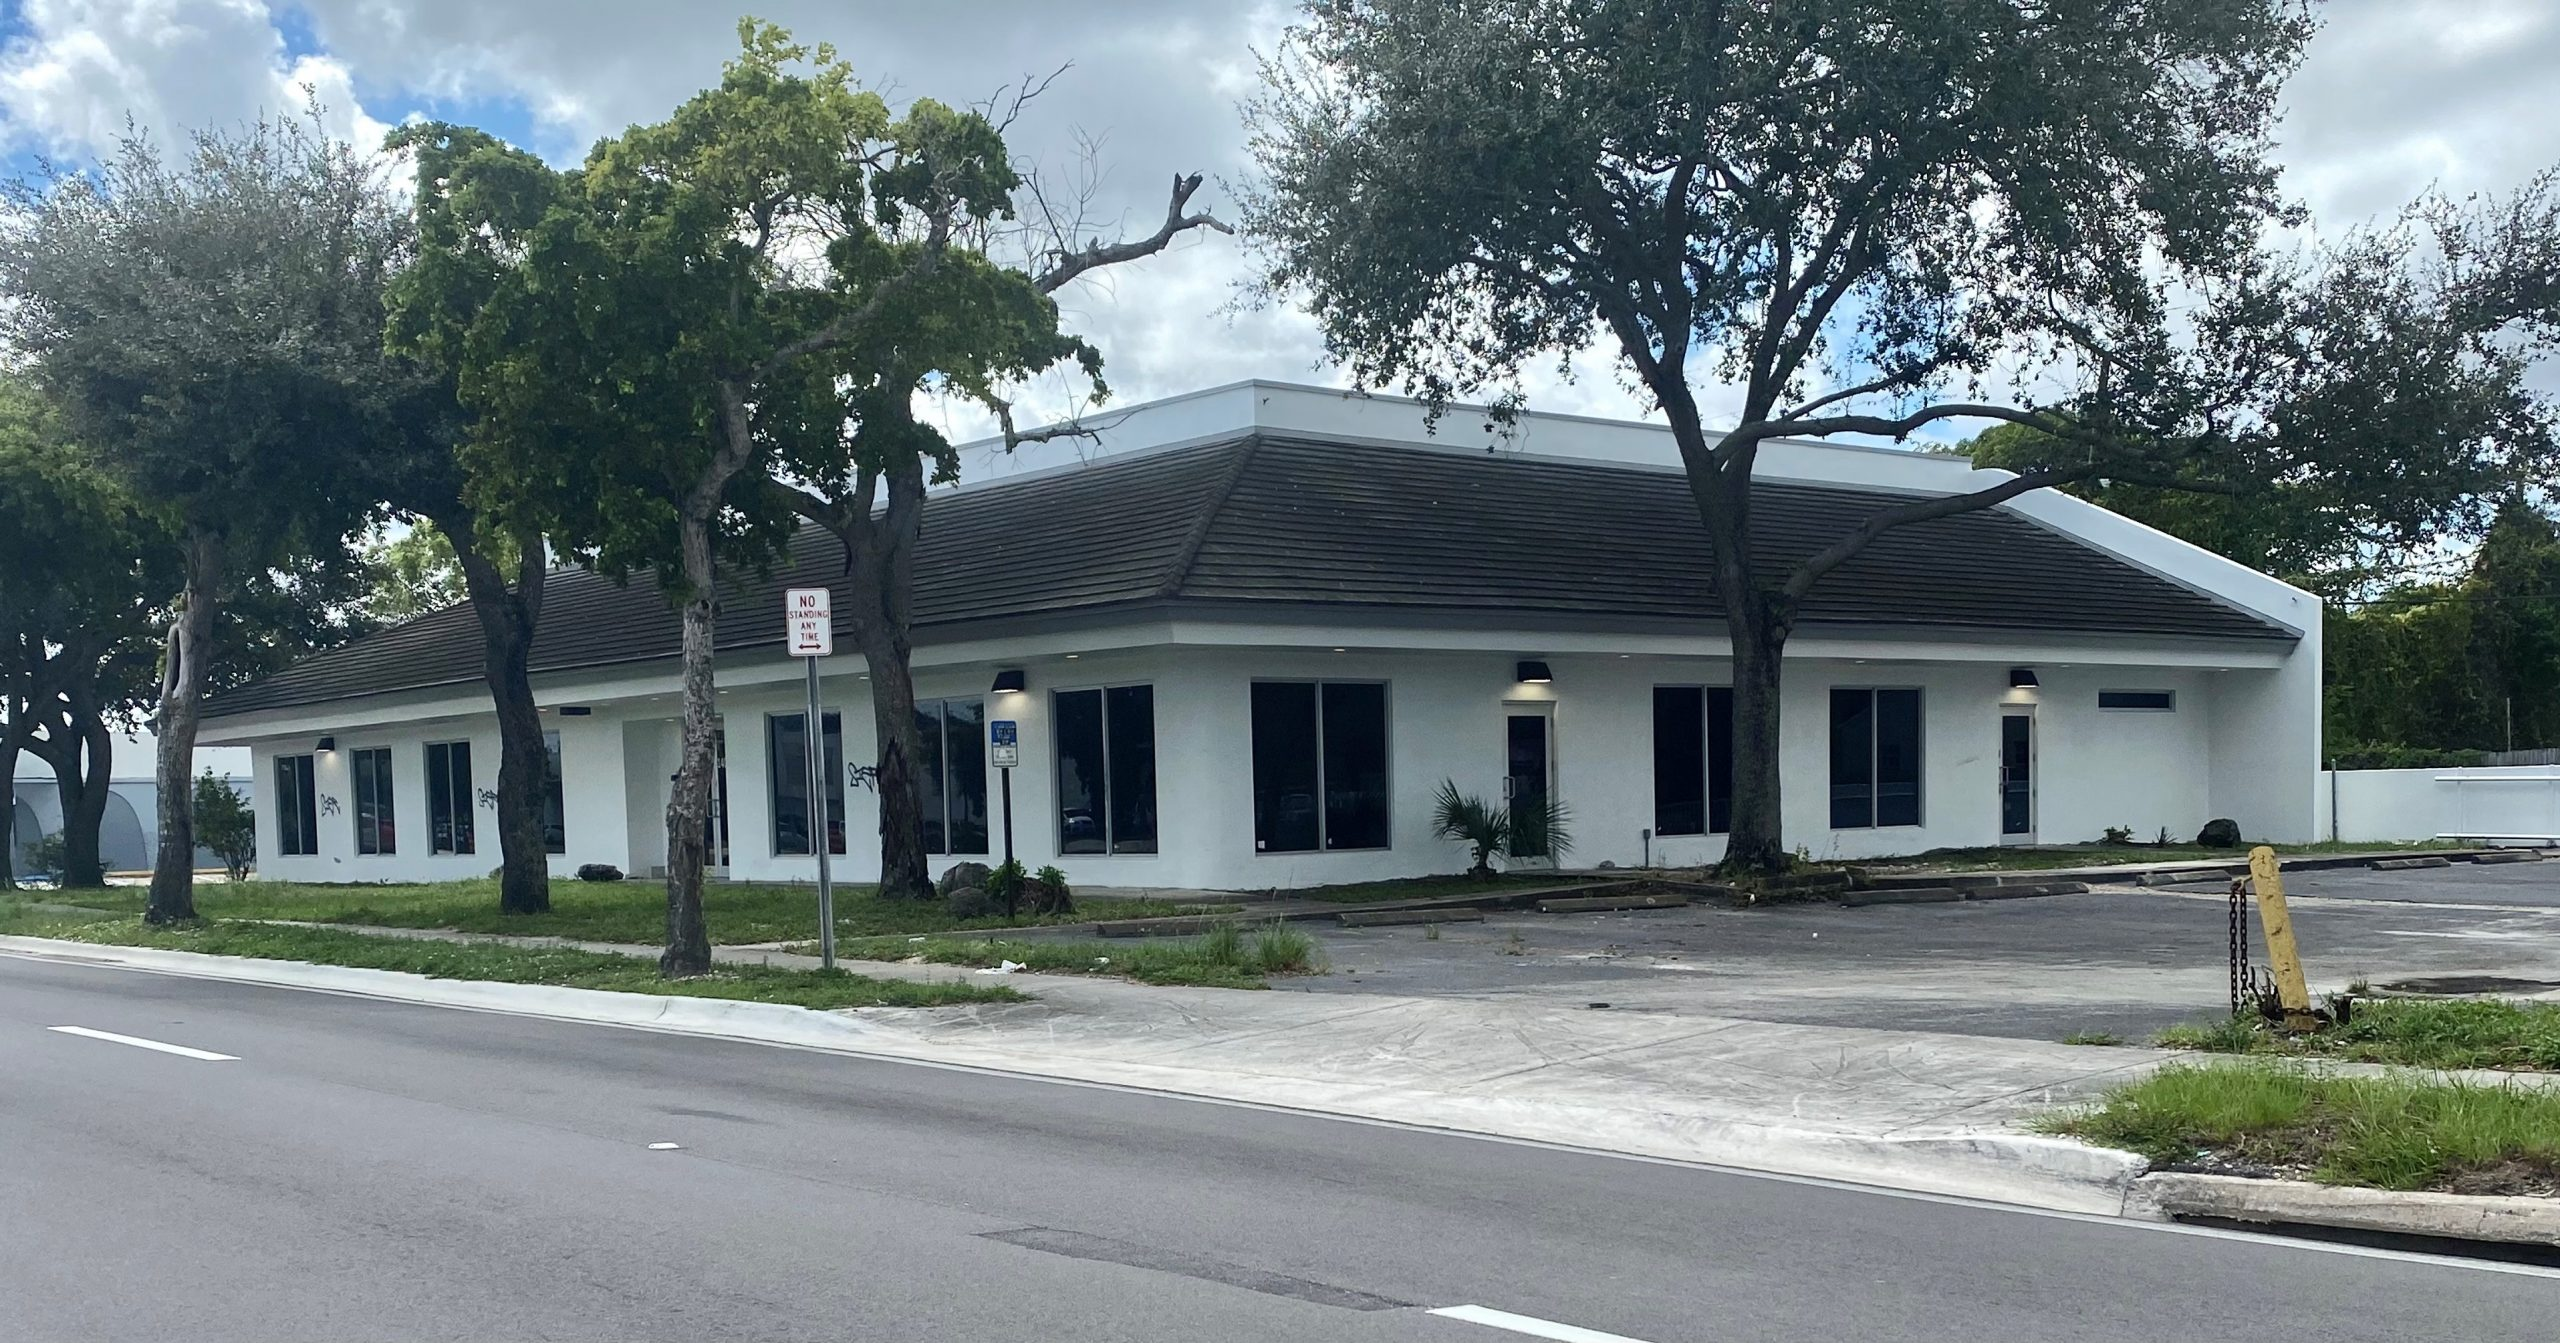 Berger Commercial Realty's Lawrence Oxenberg, Jonathan Thiel Negotiate Sale Of Miami Office/Retail Property